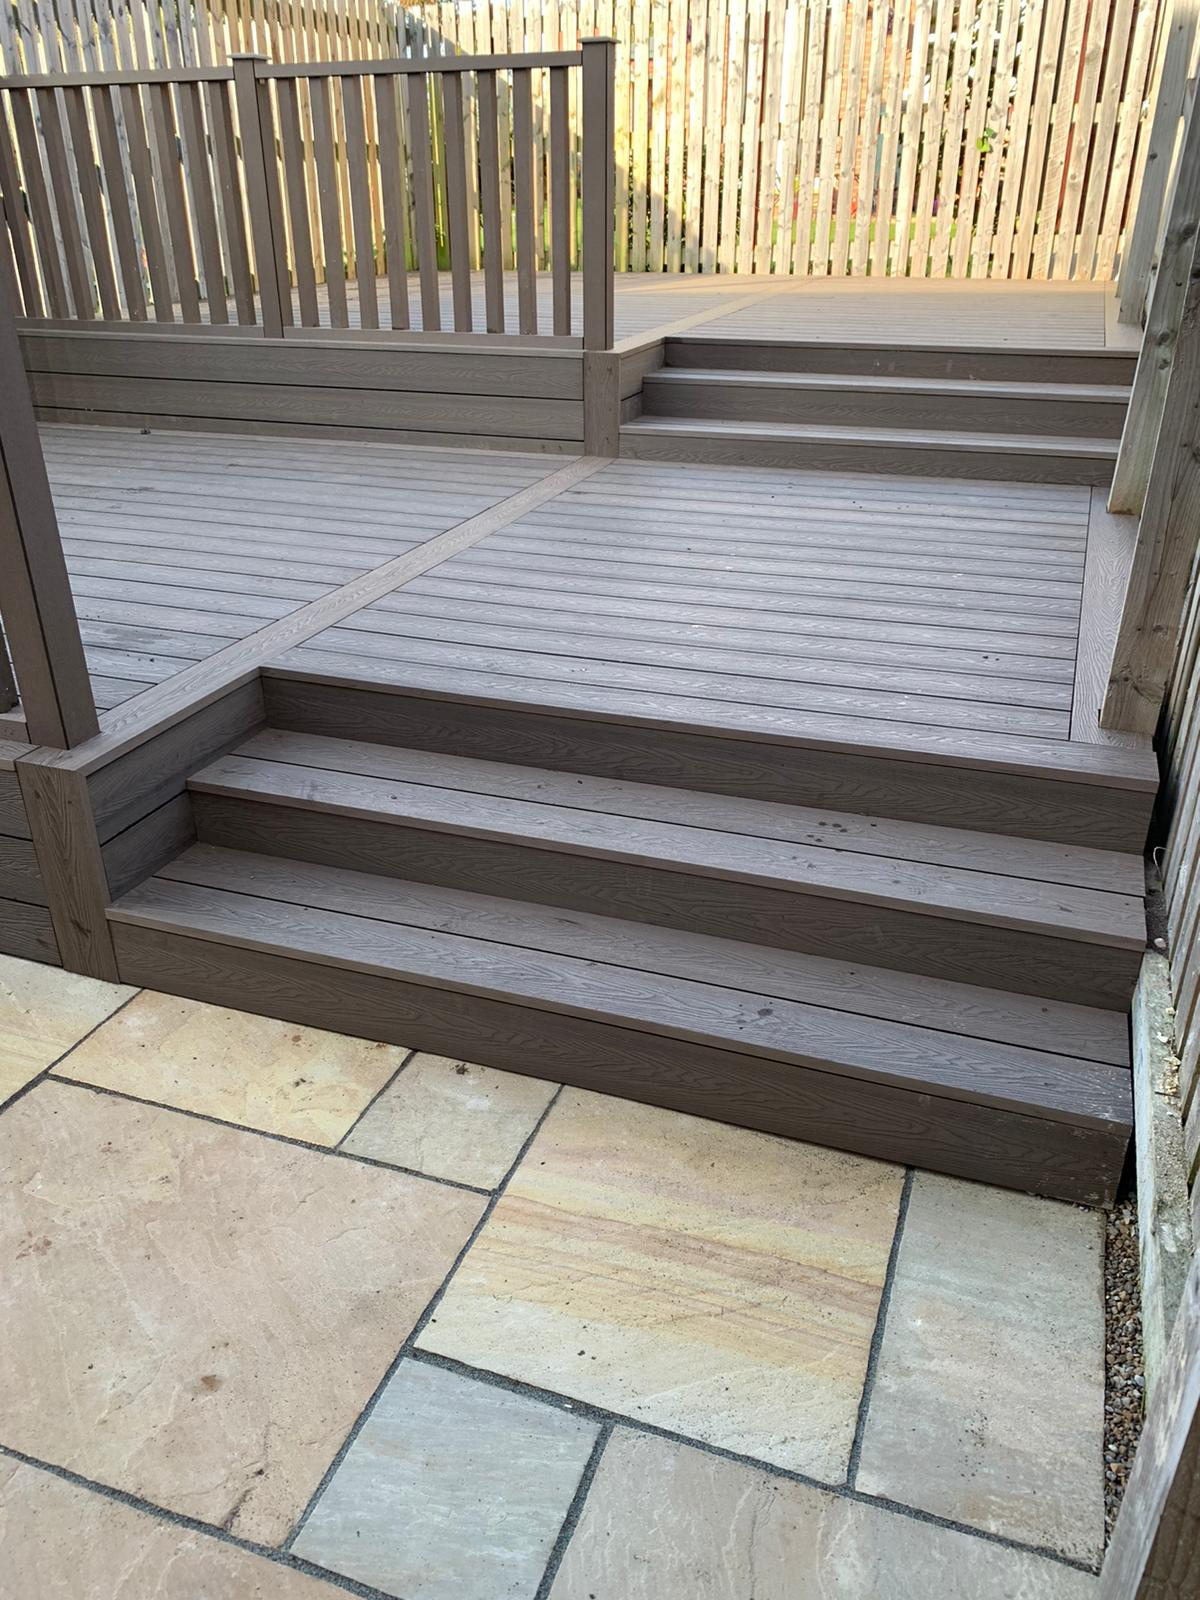 HERITAGE DEEP EMBOSSED BROWN COMPOSITE DECKING WITH HANDRAILS